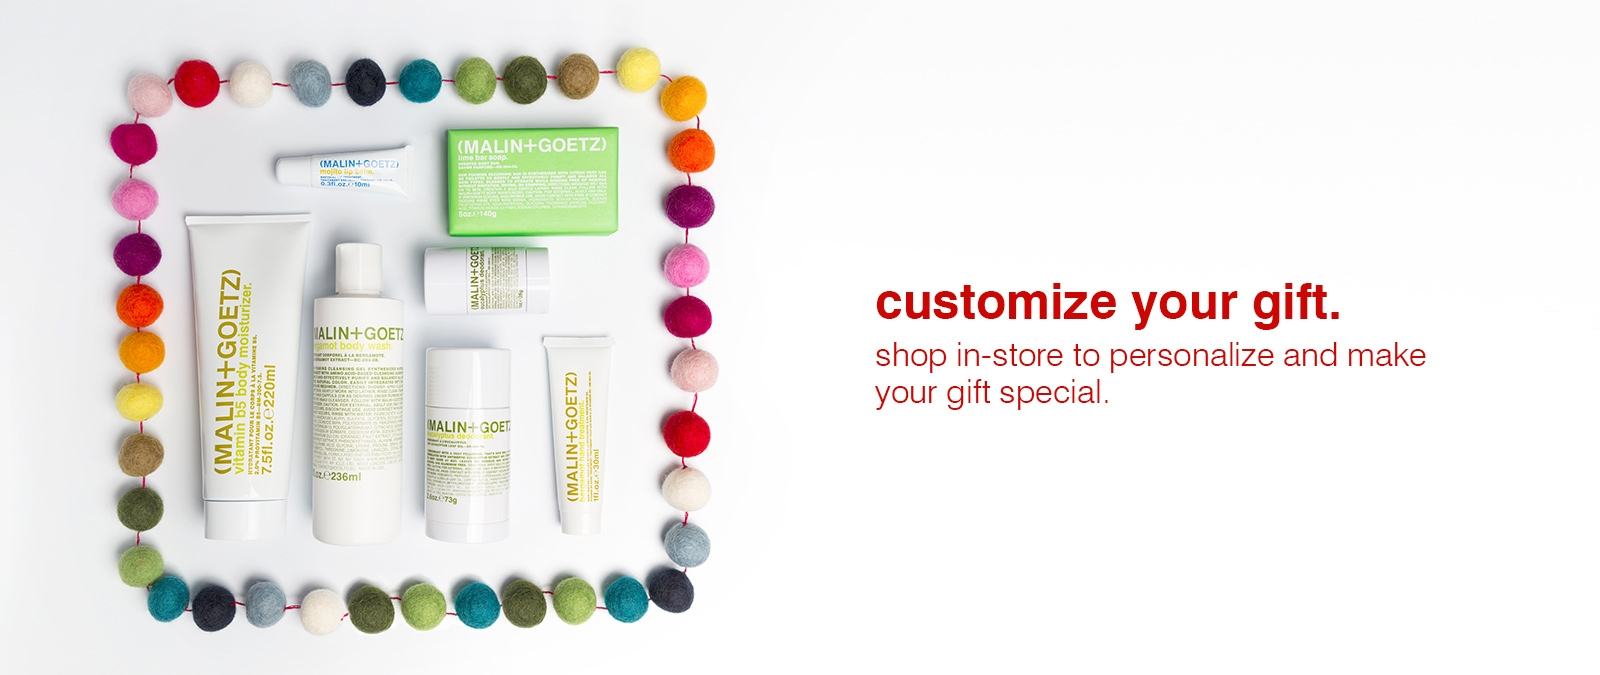 customize your gift.